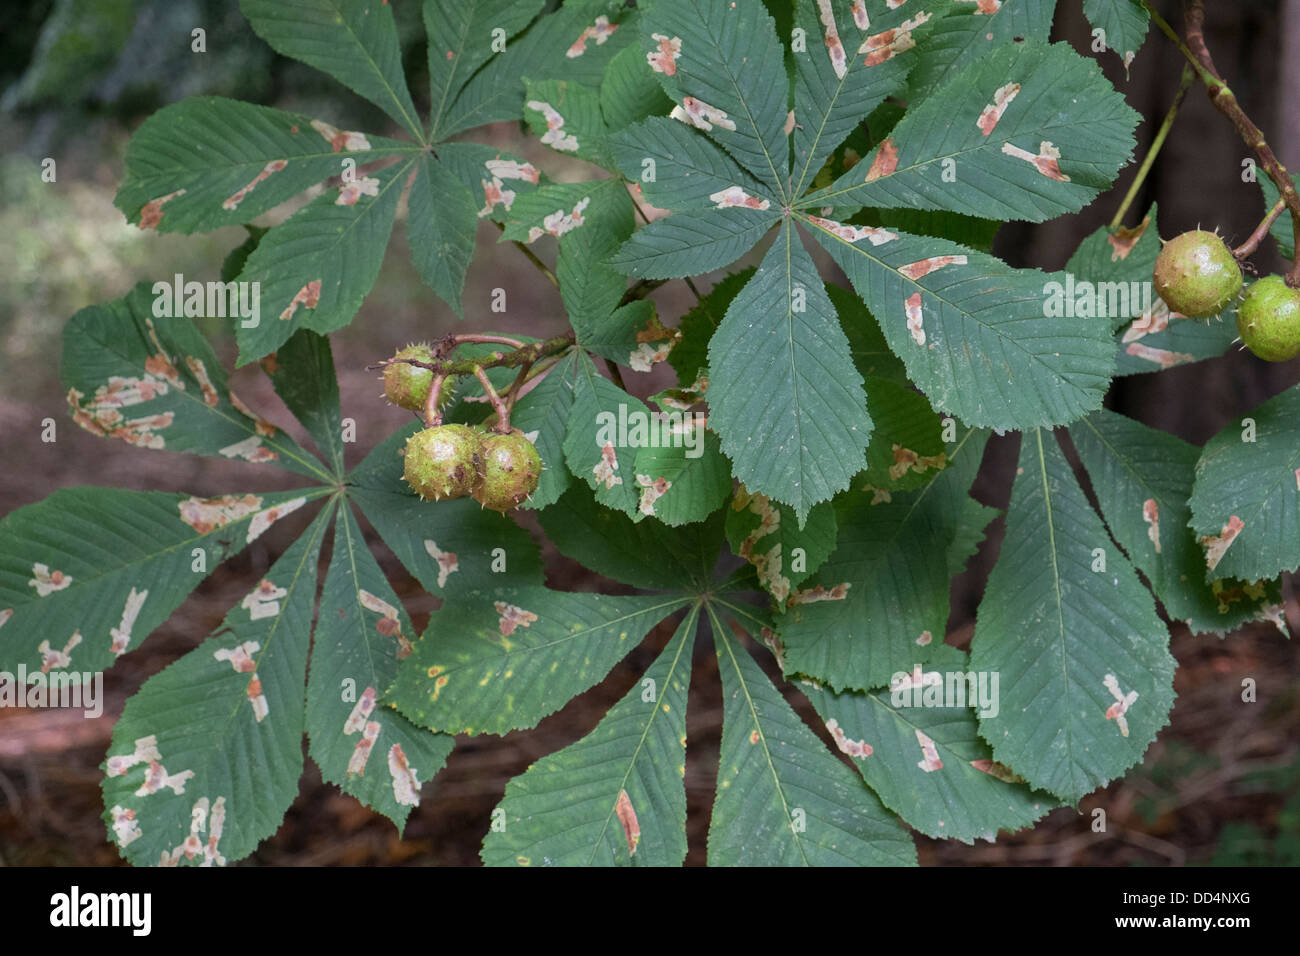 Horse Chestnut, Aesculus hippocastanum. Showing damage caused by the leaf mining moth, Cameraria ohridella. Stock Photo